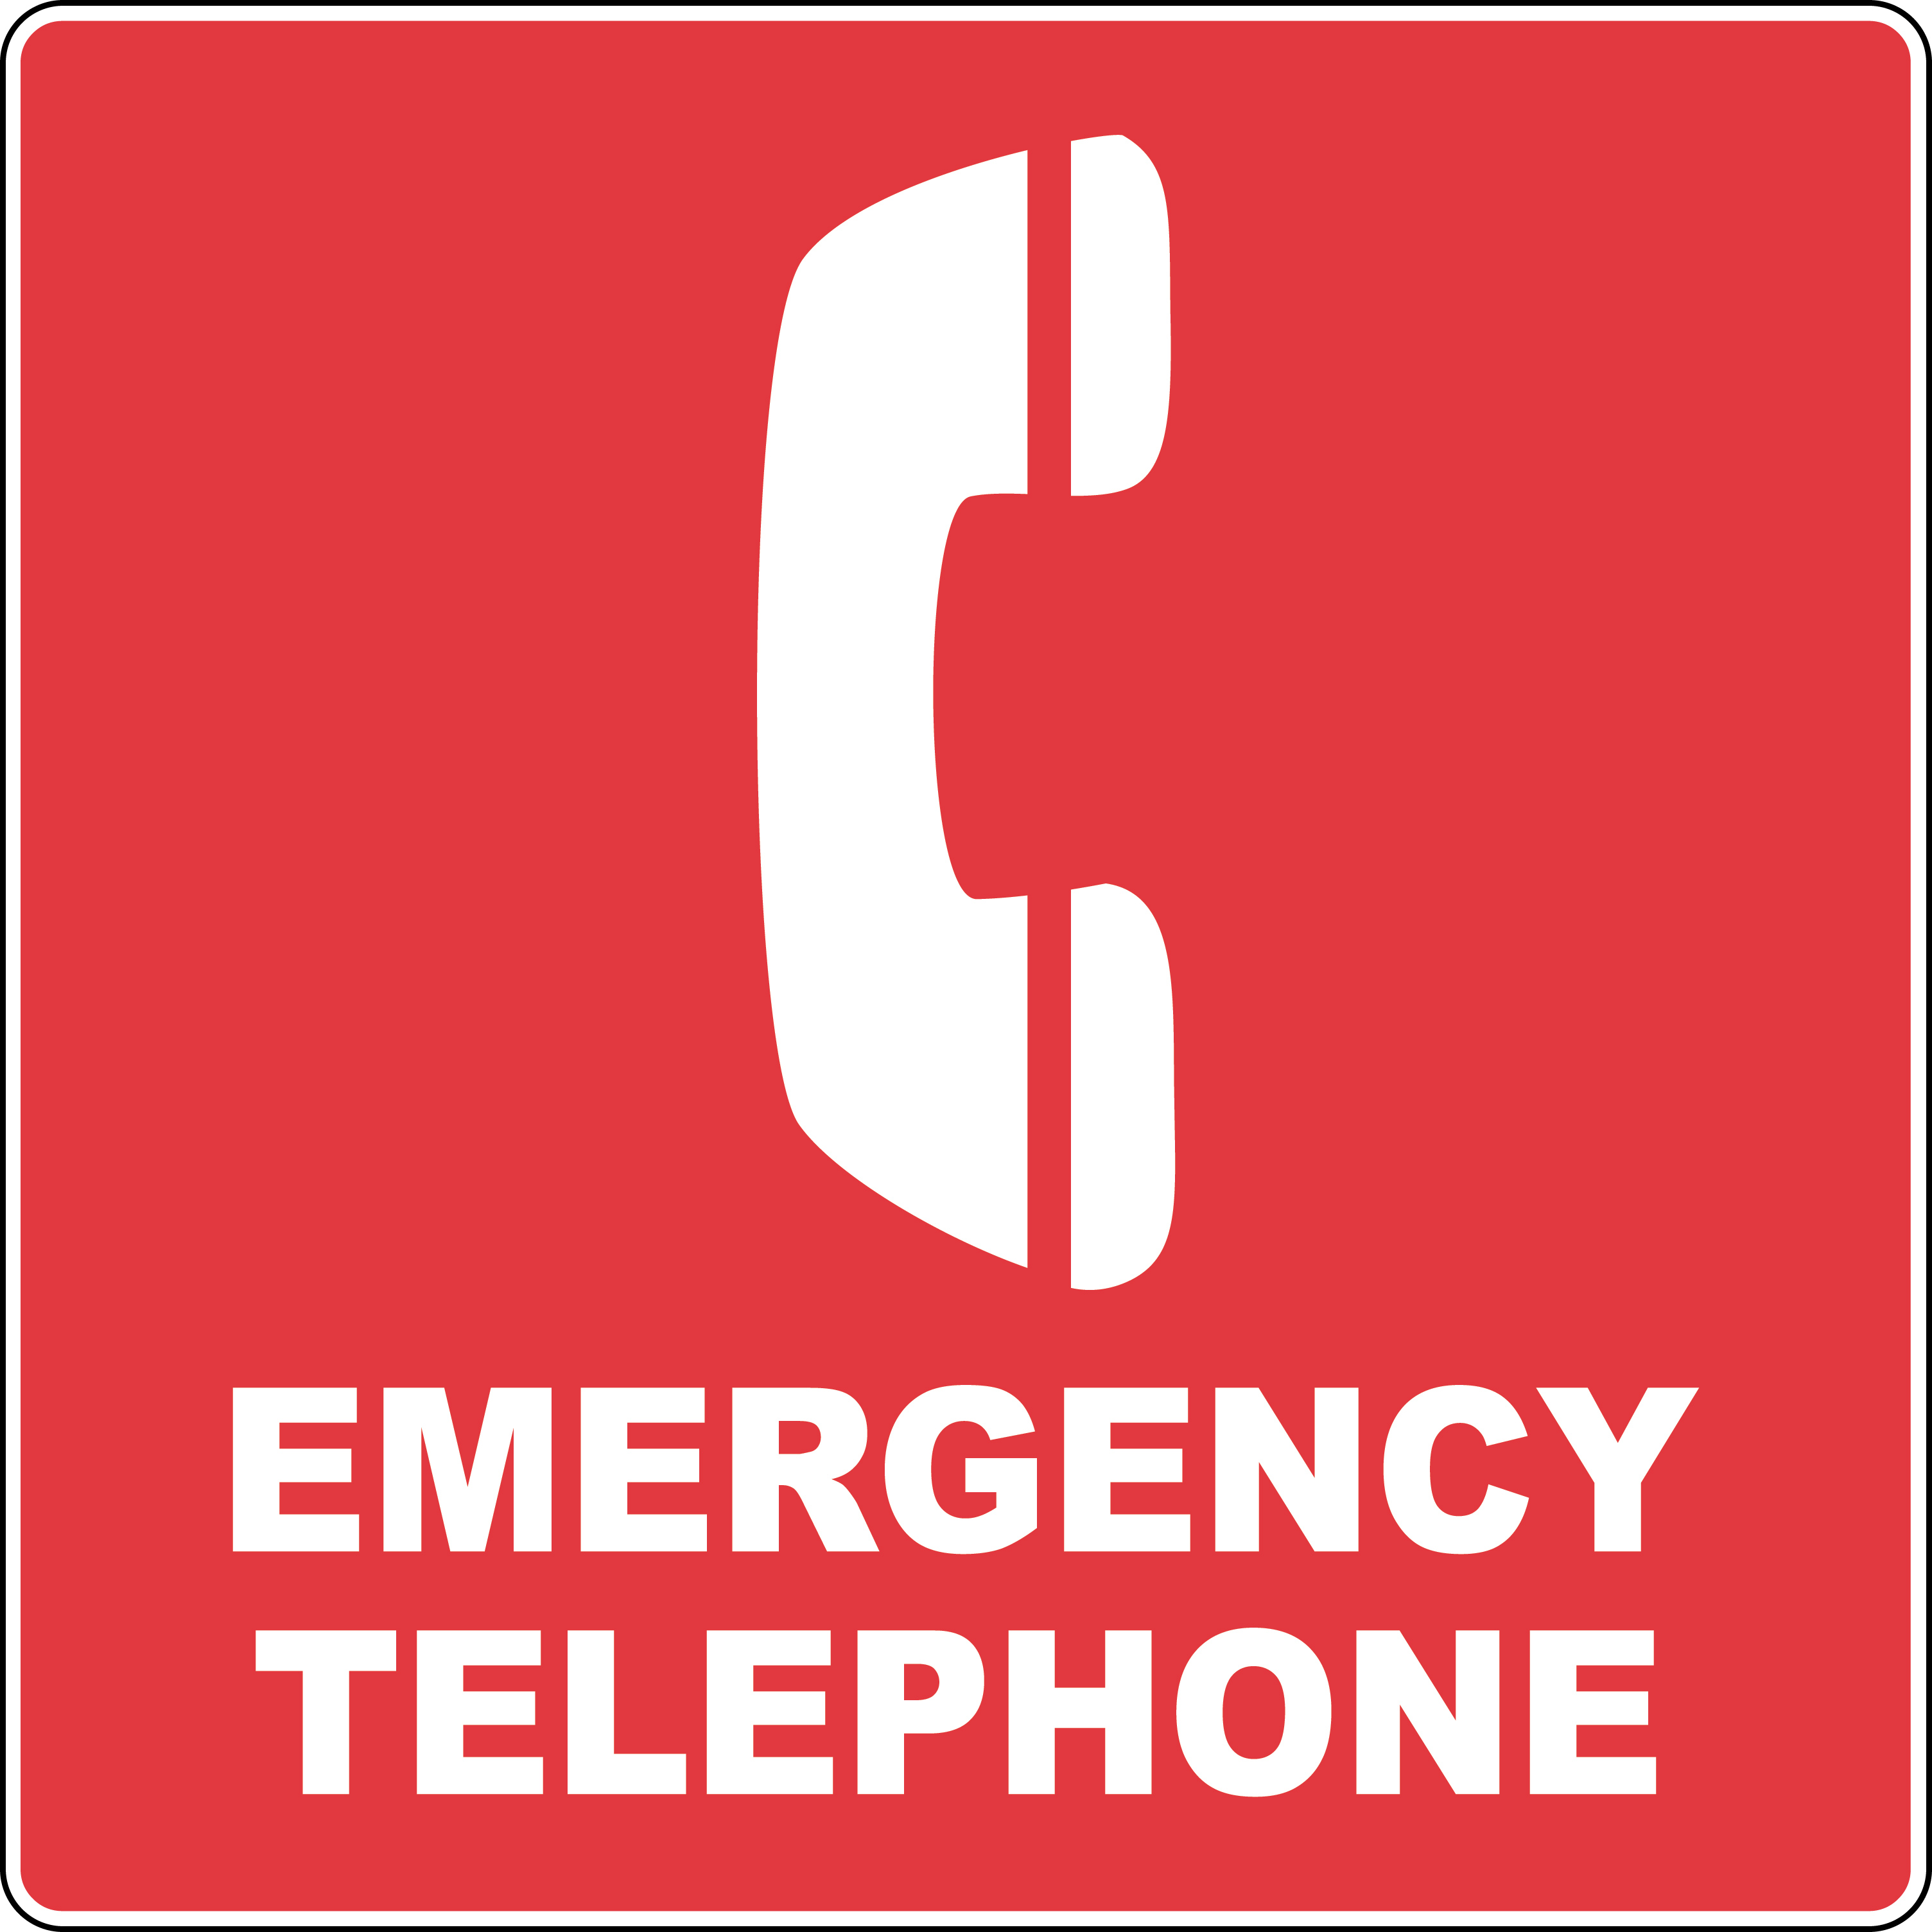 Telephone clipart emergency contact. Free cliparts download clip